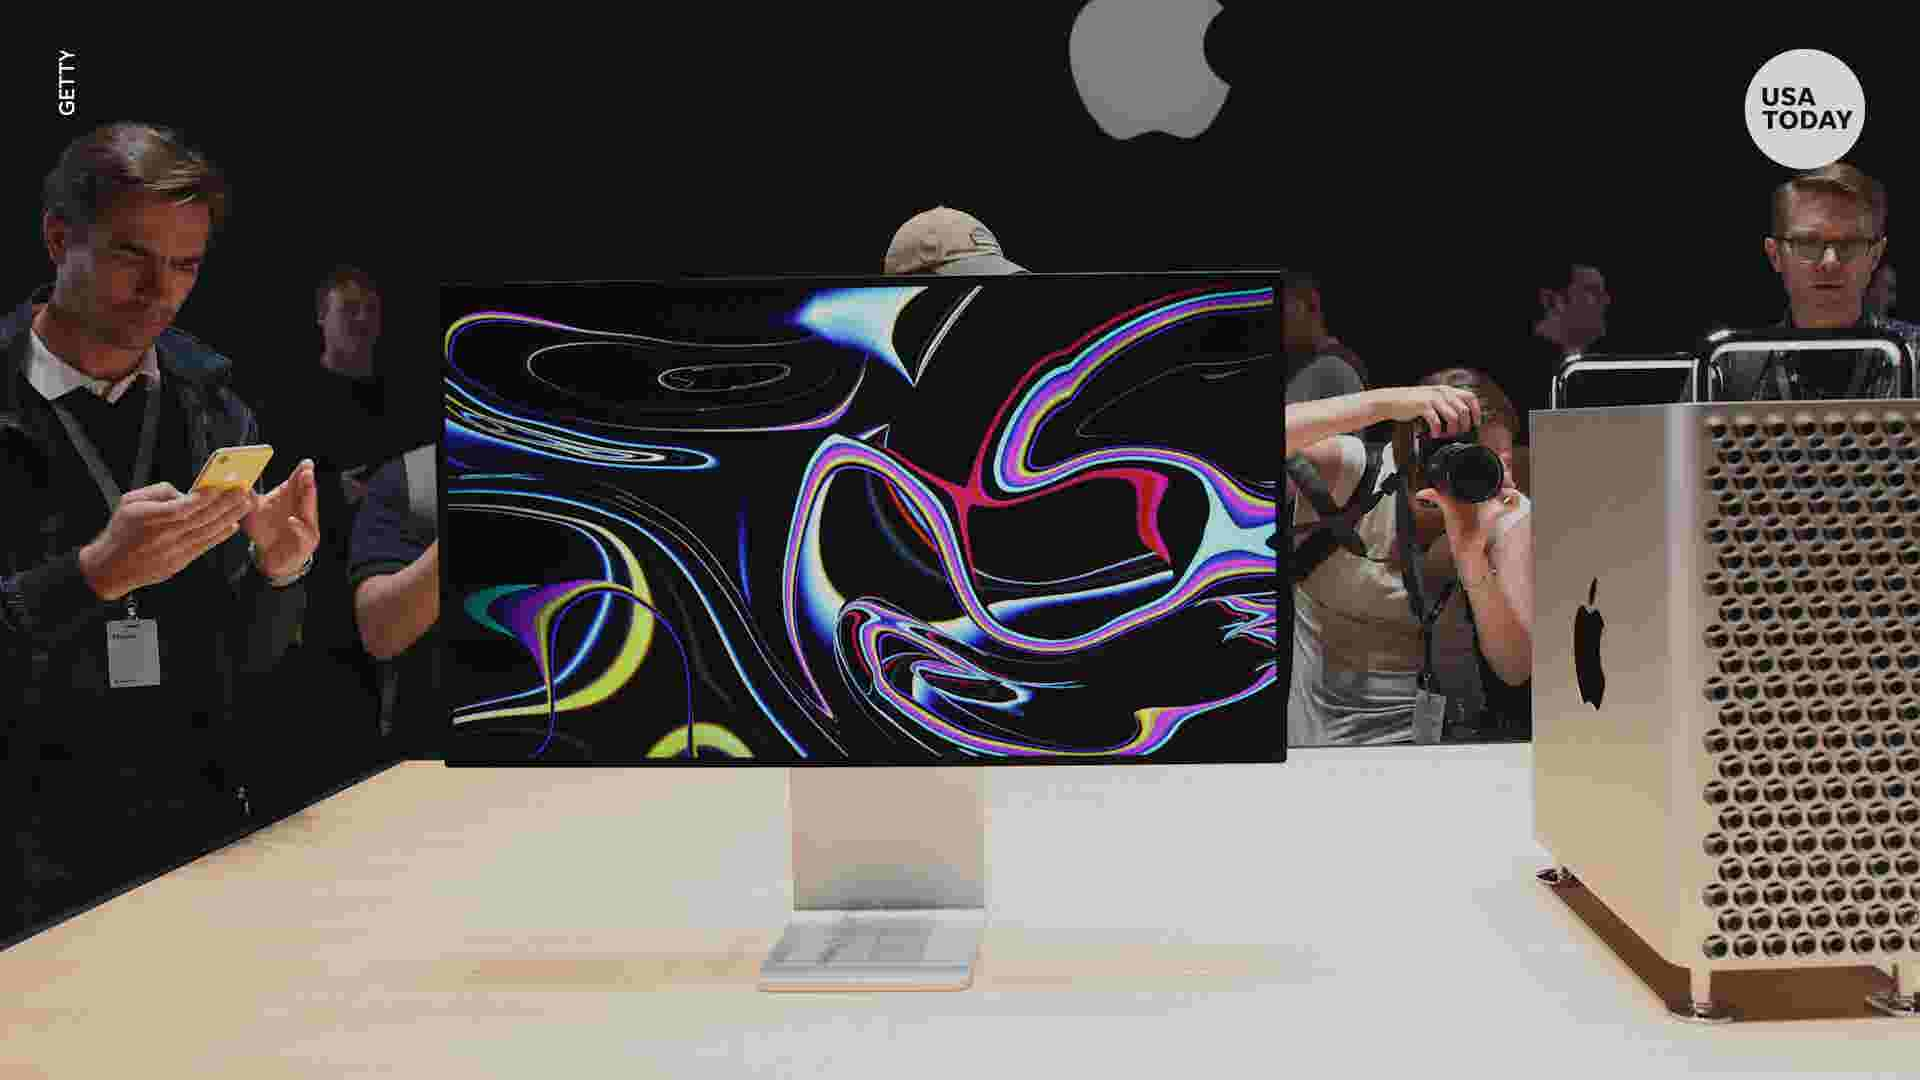 Apple unveils $1,000 Pro Display stand. Twitter users say 'no thanks!'